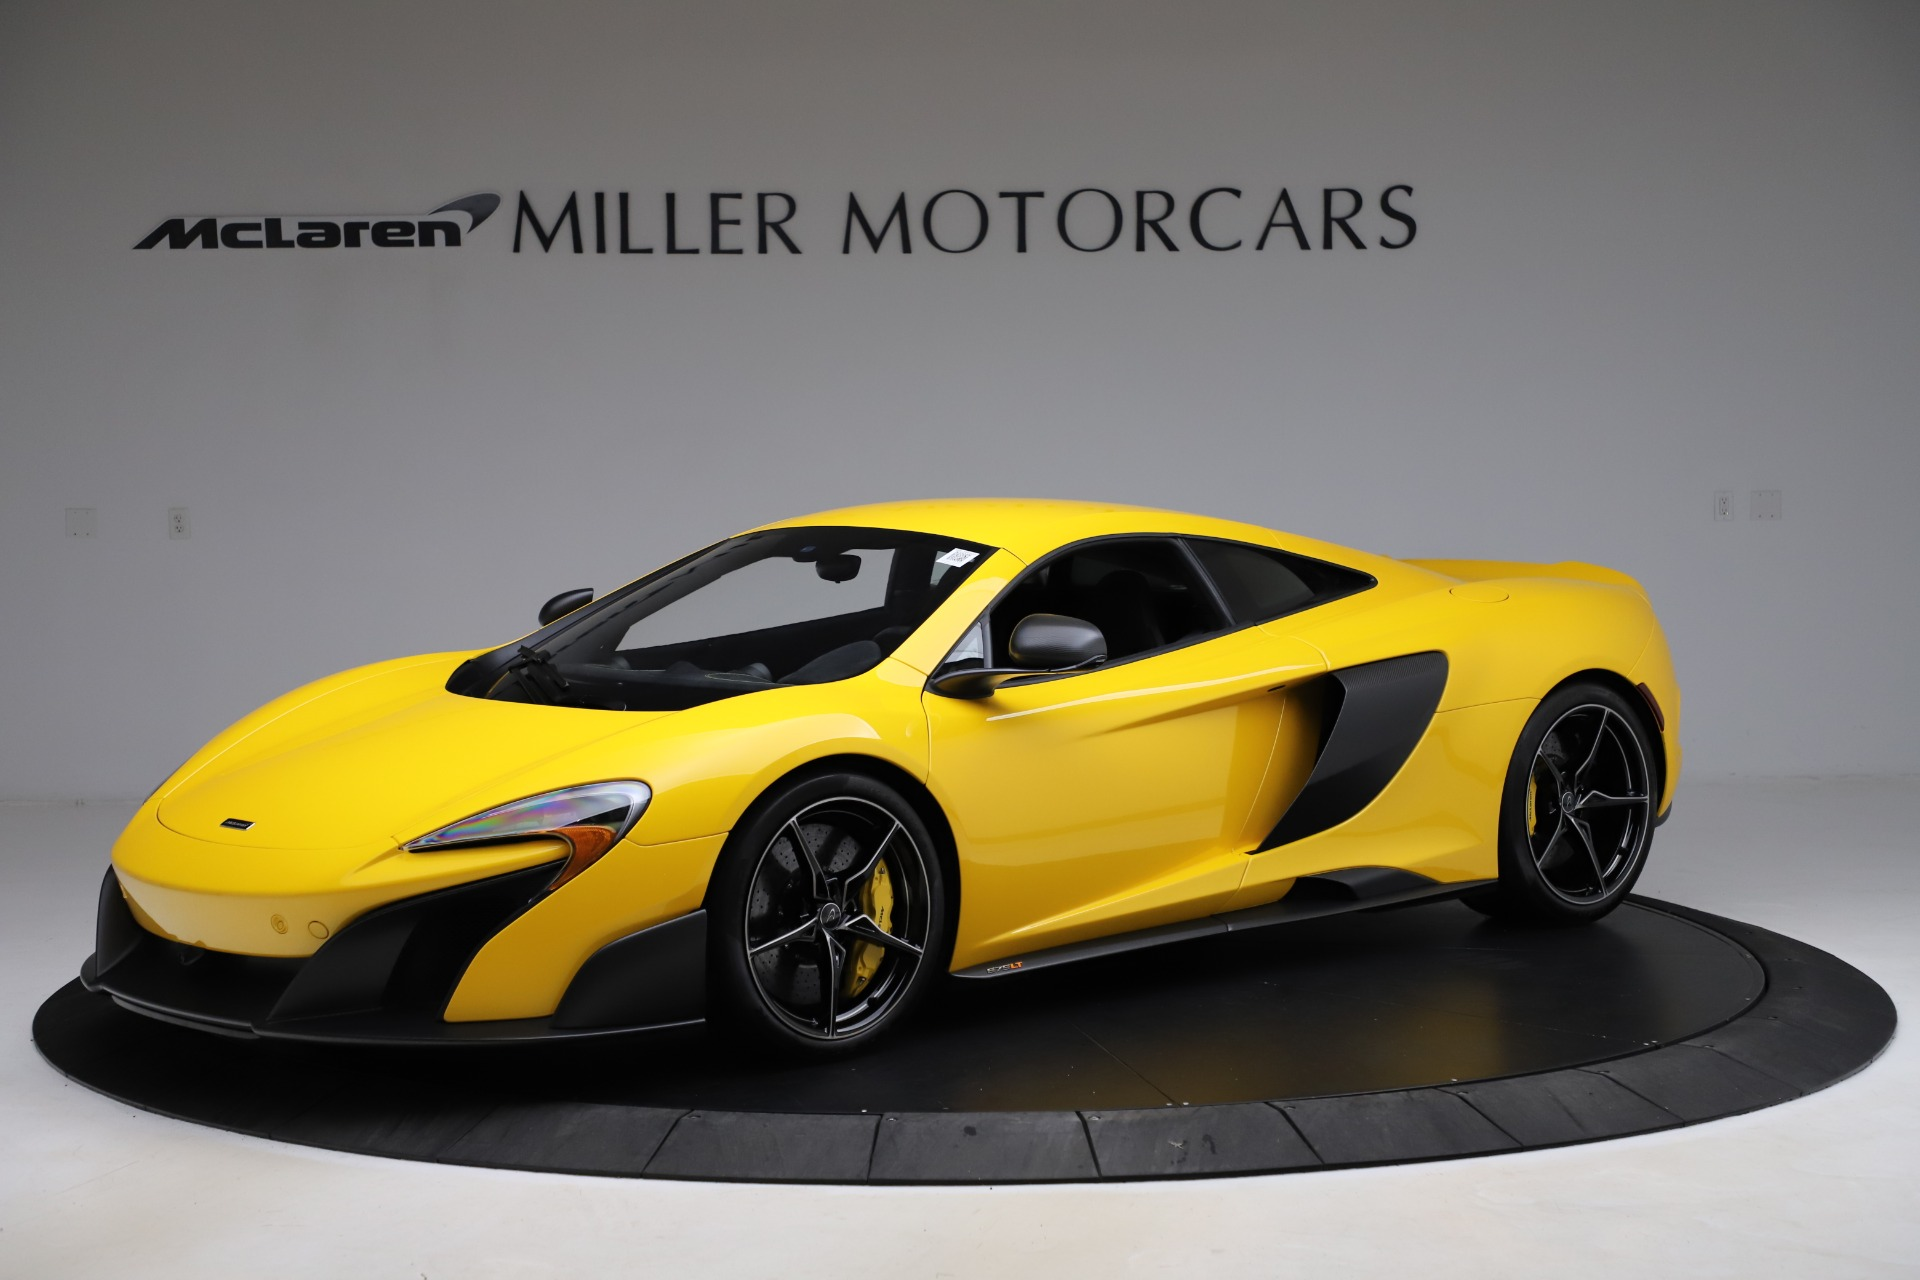 Used 2016 McLaren 675LT for sale $225,900 at Bugatti of Greenwich in Greenwich CT 06830 1